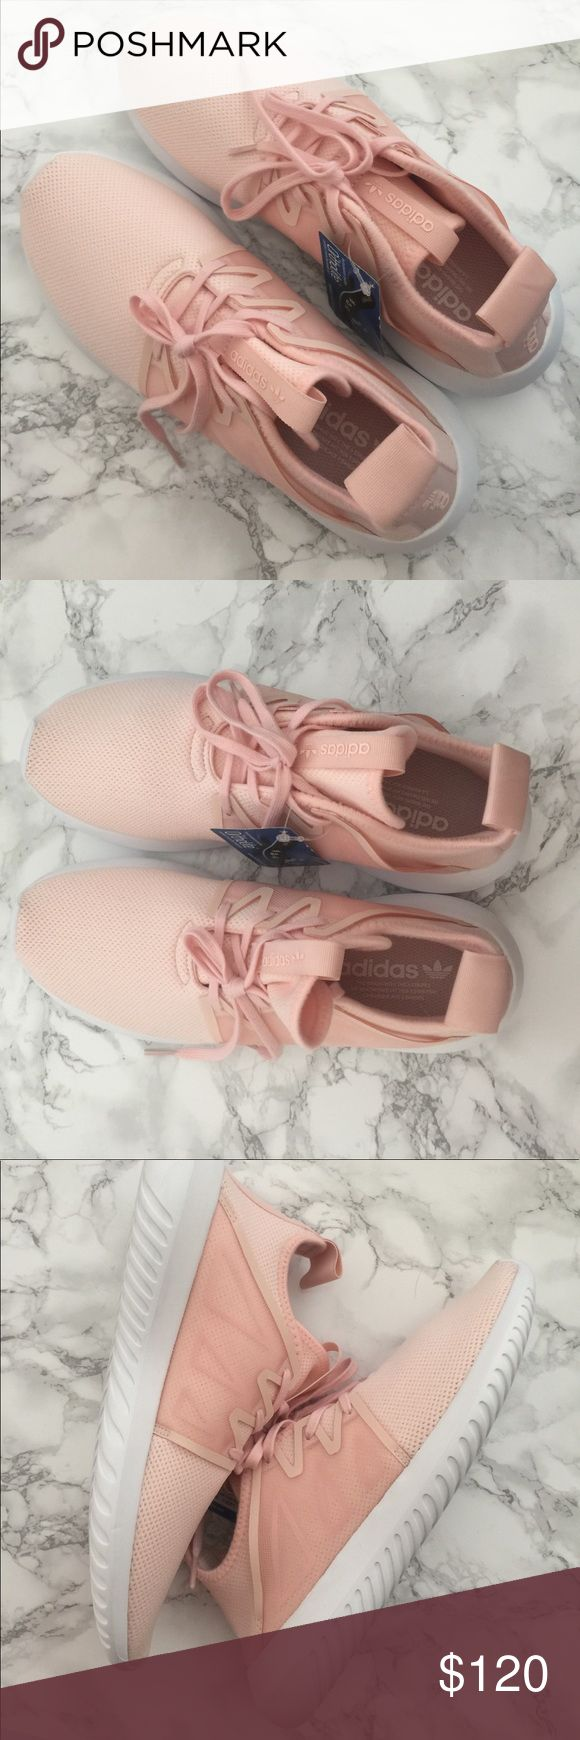 Adidas Tubular Viral 2 Womens Nordstrom Anniversary Style in exclusive color way ice pink!! Sold out in the first day. Runs a 1/2 size small, so size up. Purchased for myself and does not fit. Priced accordingly based on demand and 20% poshmark commission fee. adidas Shoes Sneakers